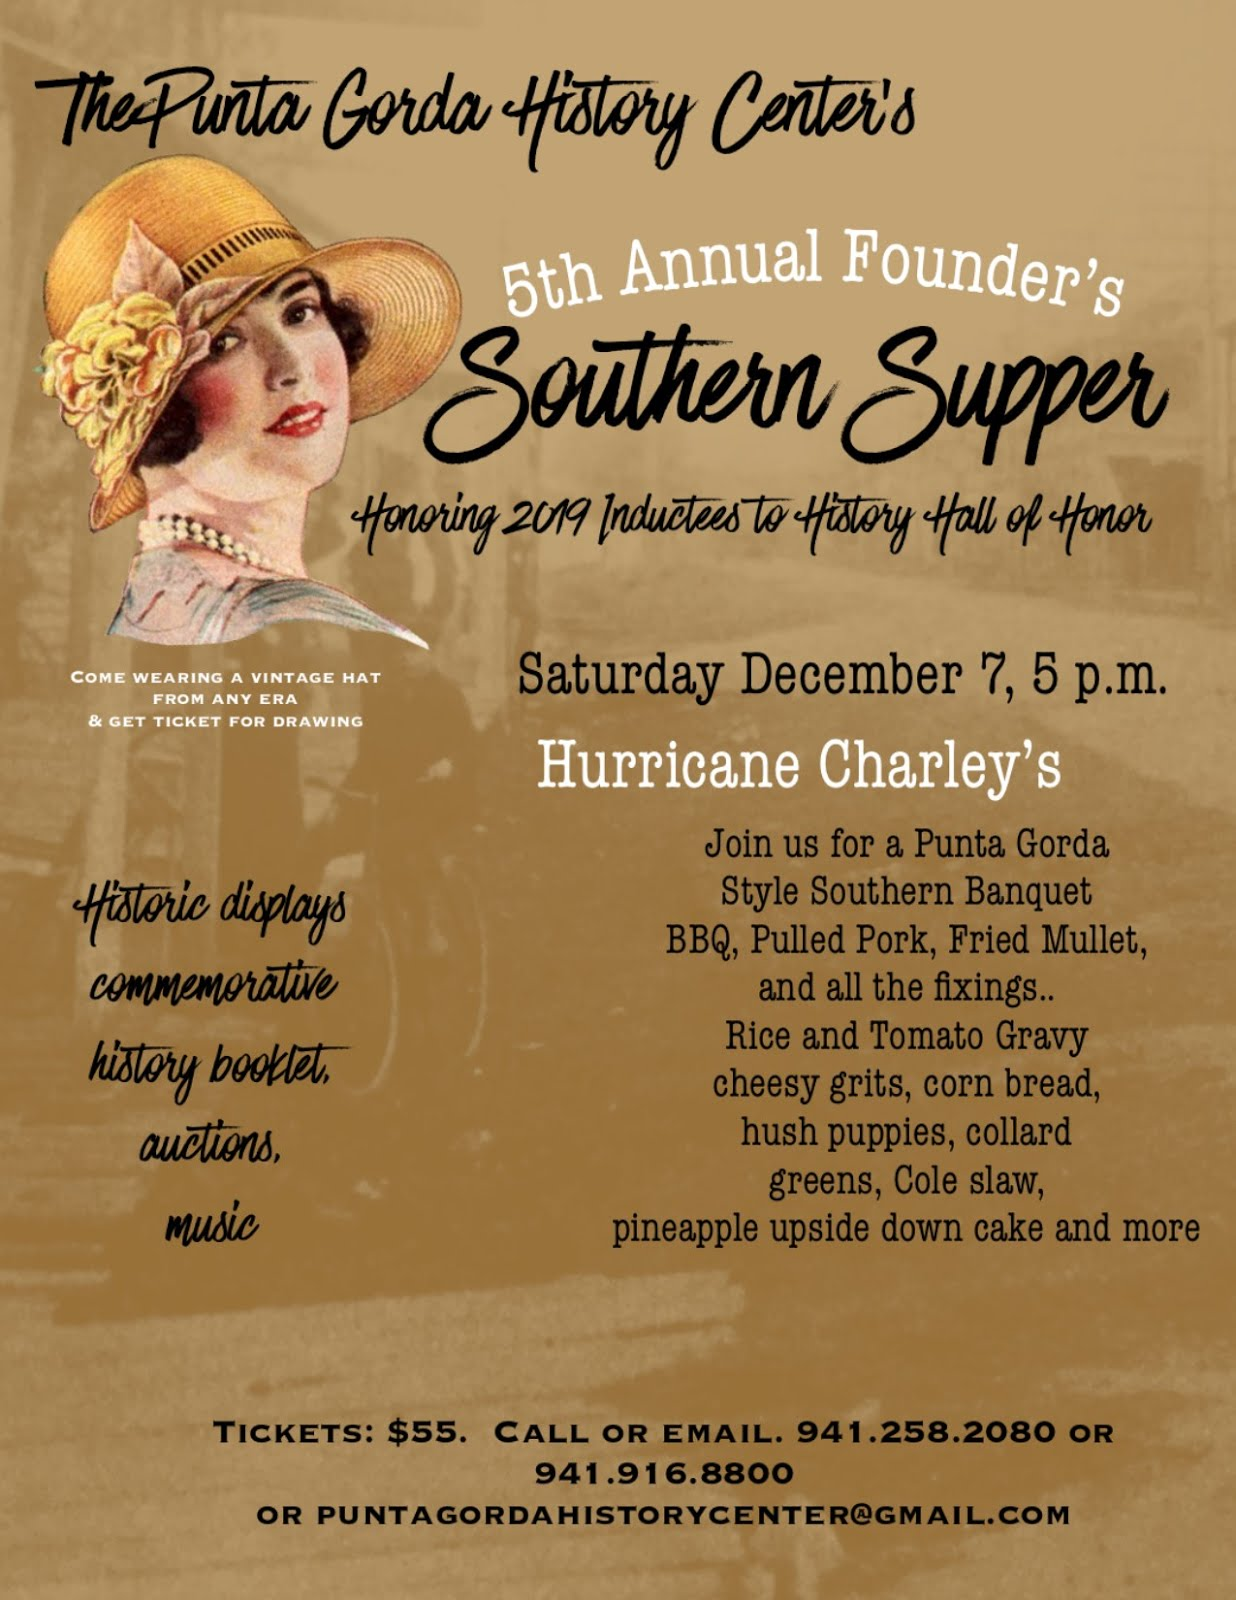 Tickets for Southern Supper